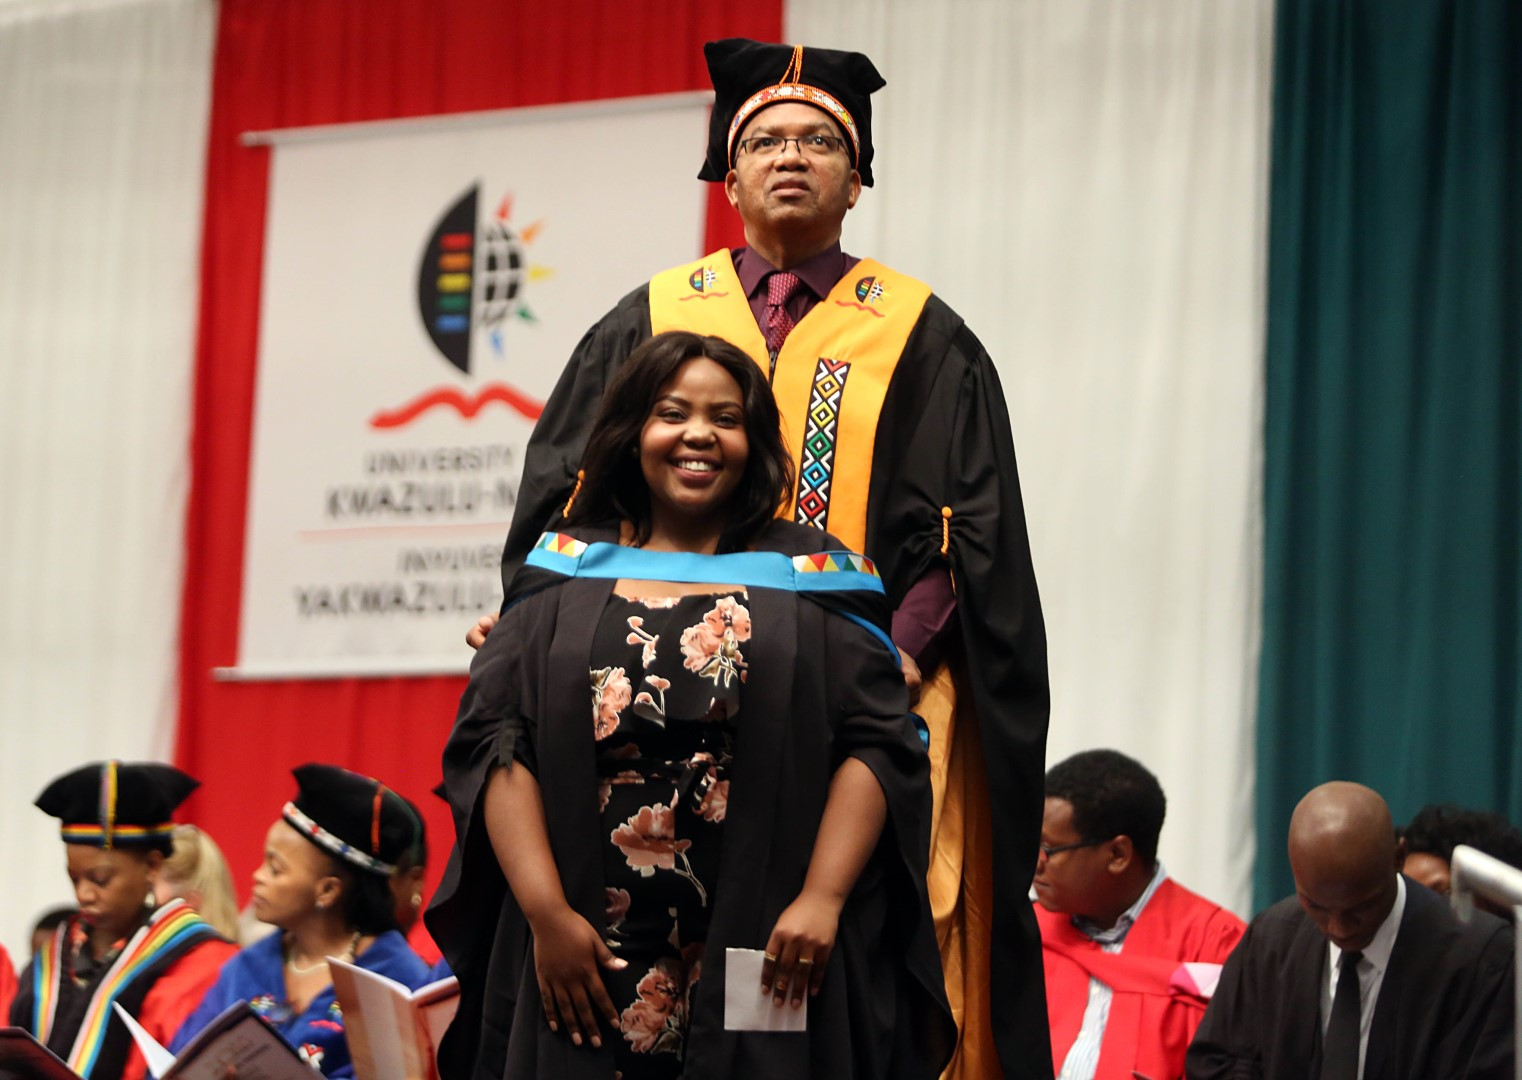 Ms Mathabo Duma graduates with her Masters in Arts.